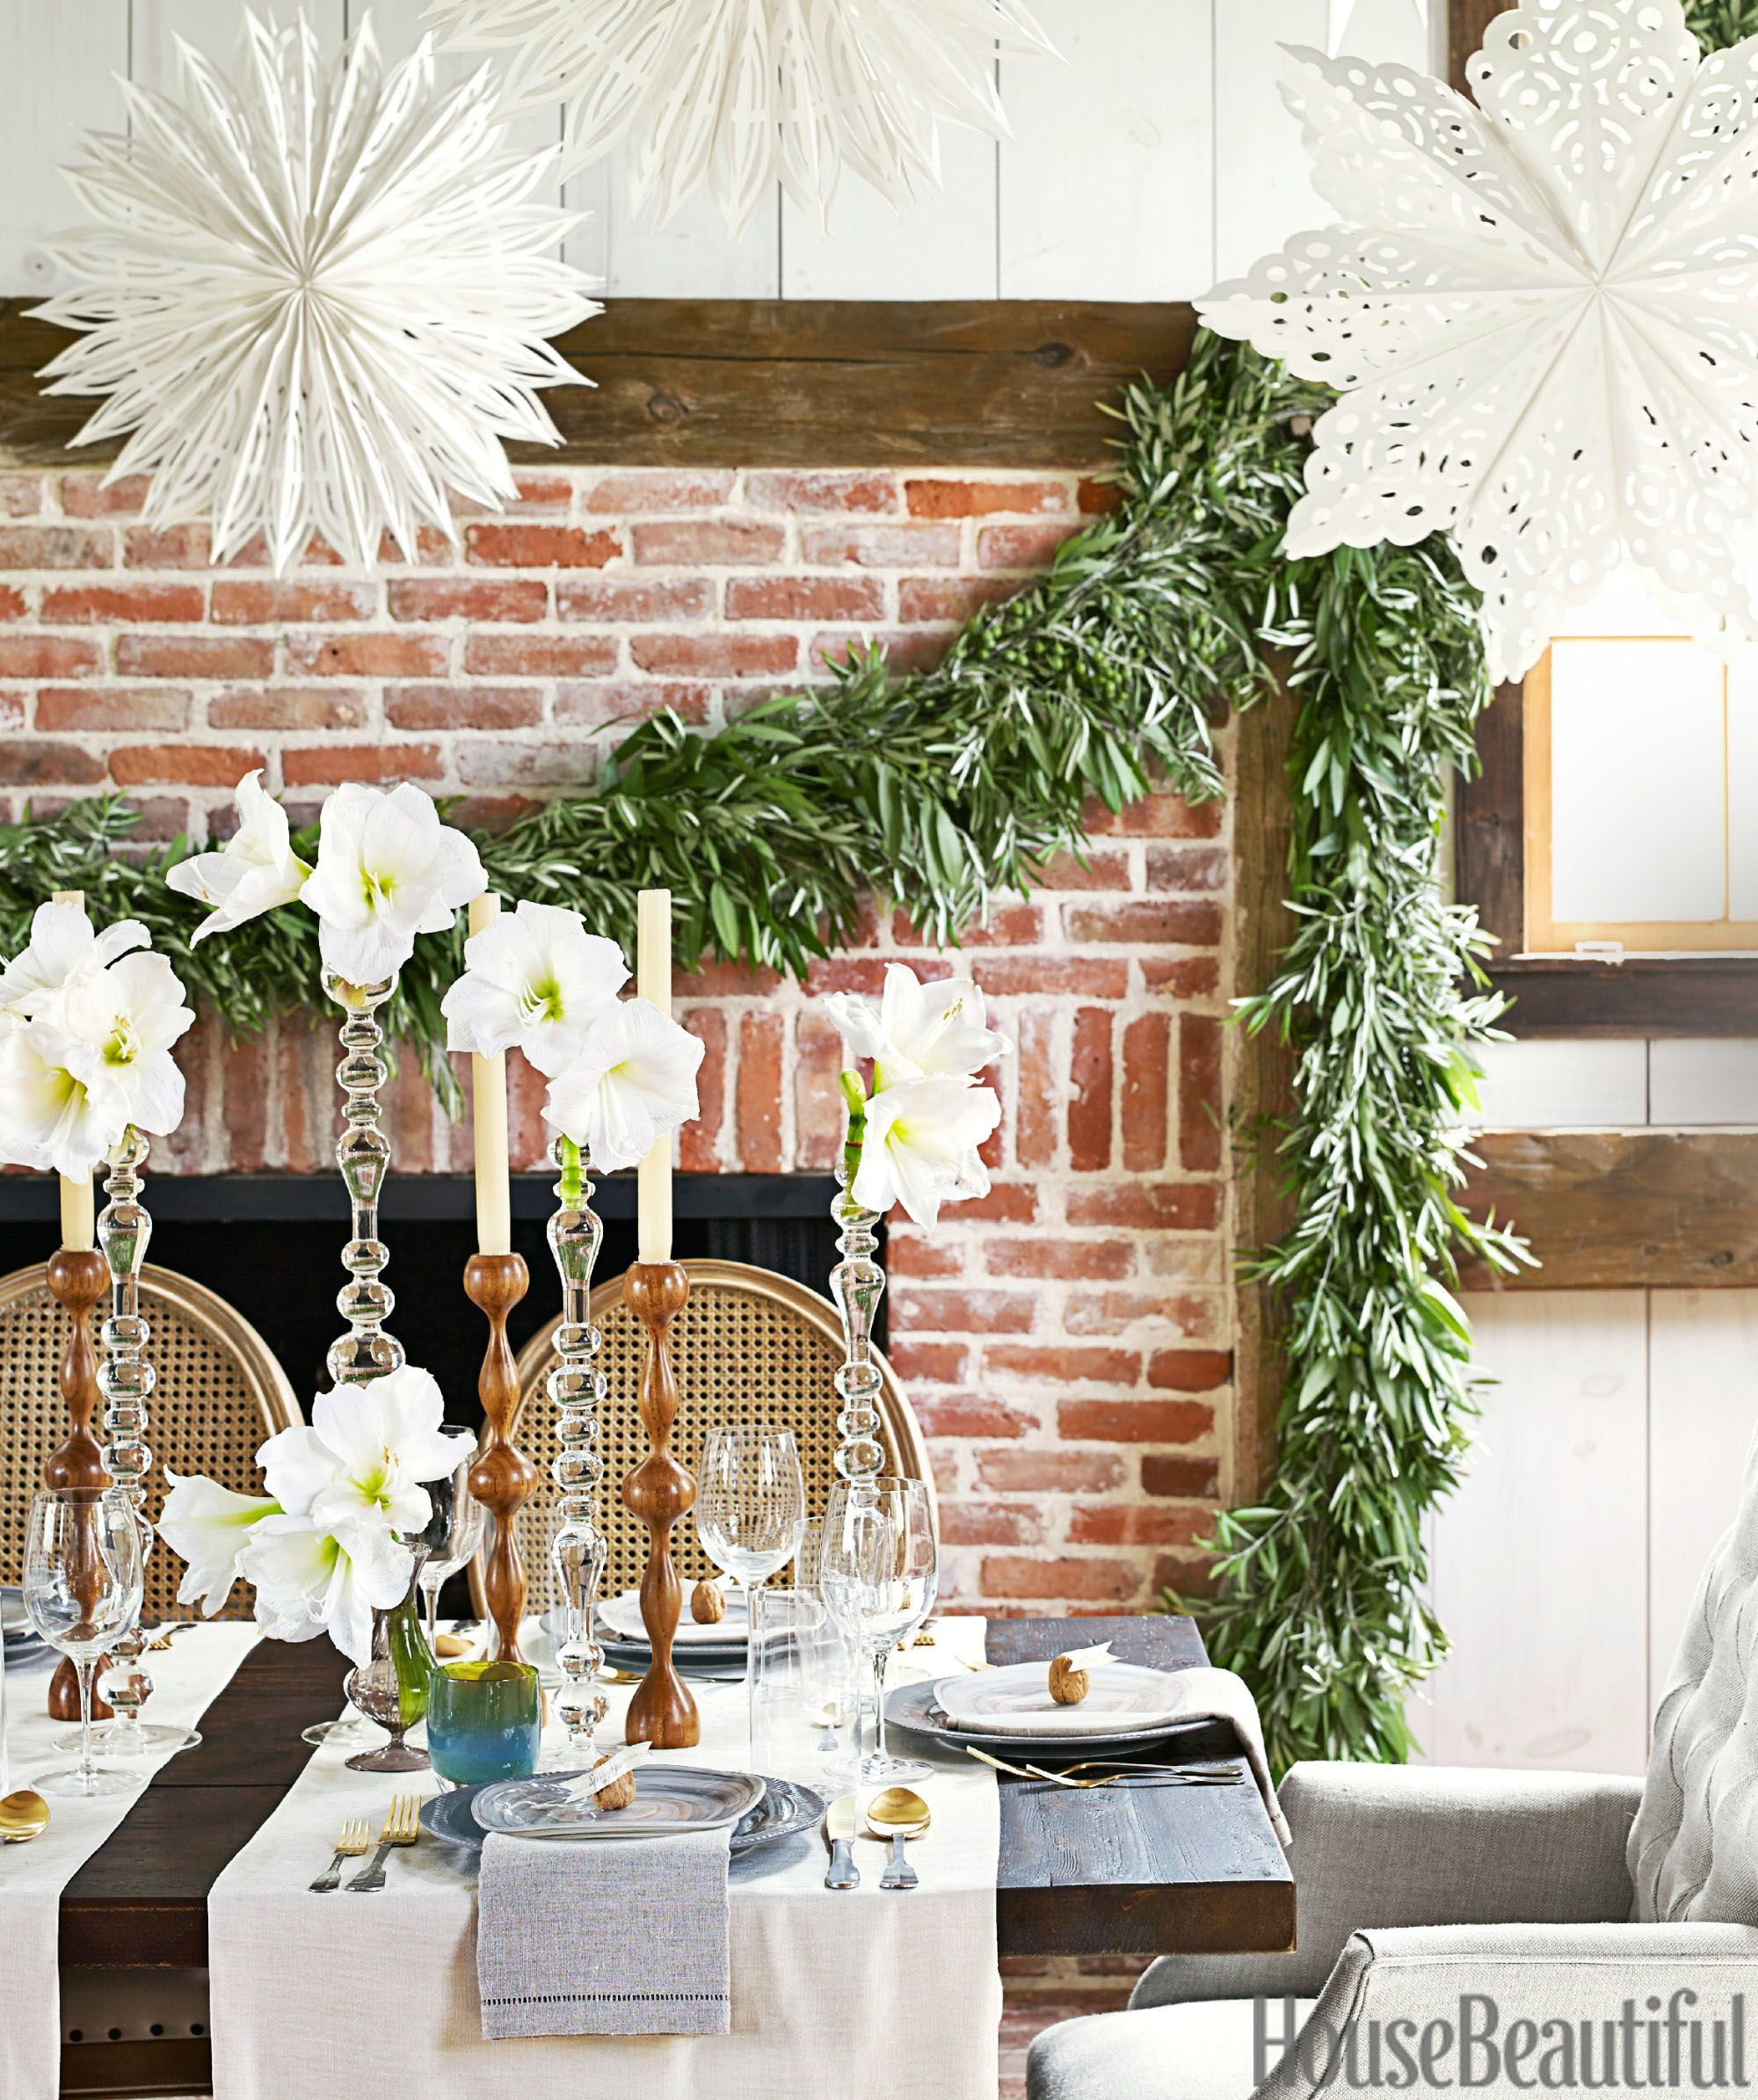 Floral Table Decorations For Christmas  1448464462 Christmas Garland Copy